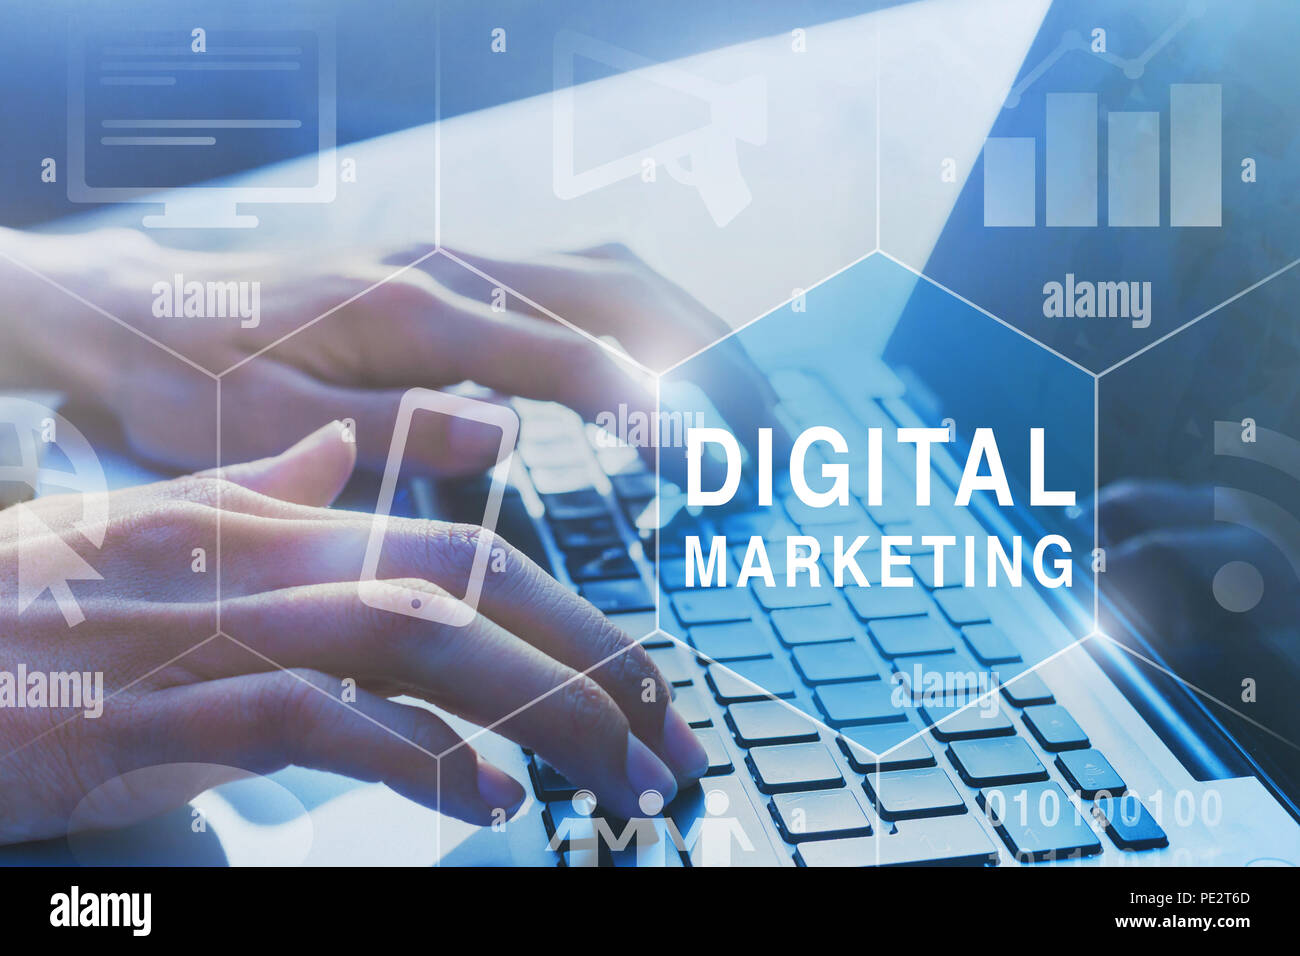 digital marketing concept diagram with icons - Stock Image